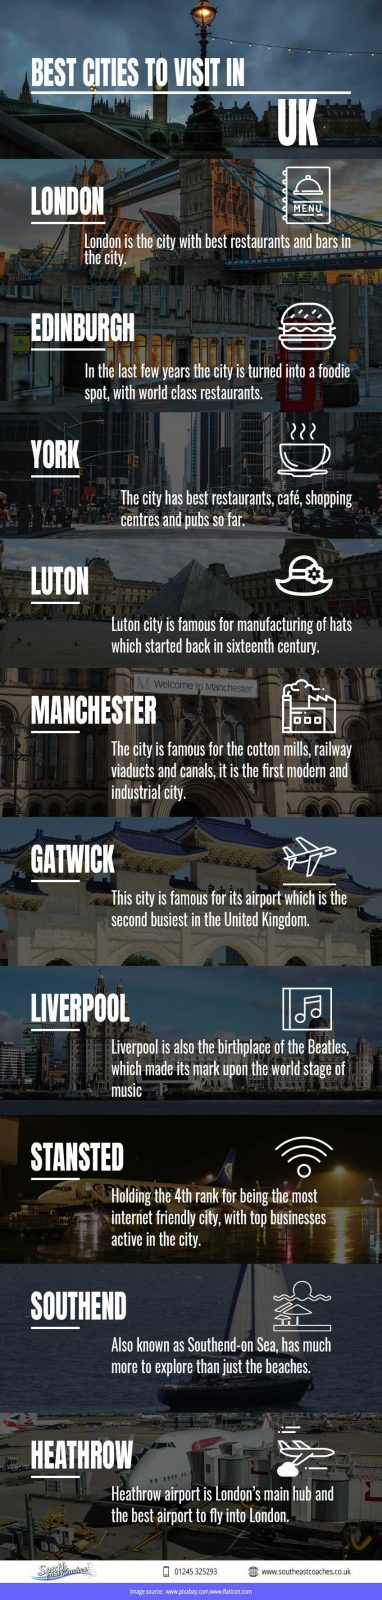 Best Cities To Visit In UK